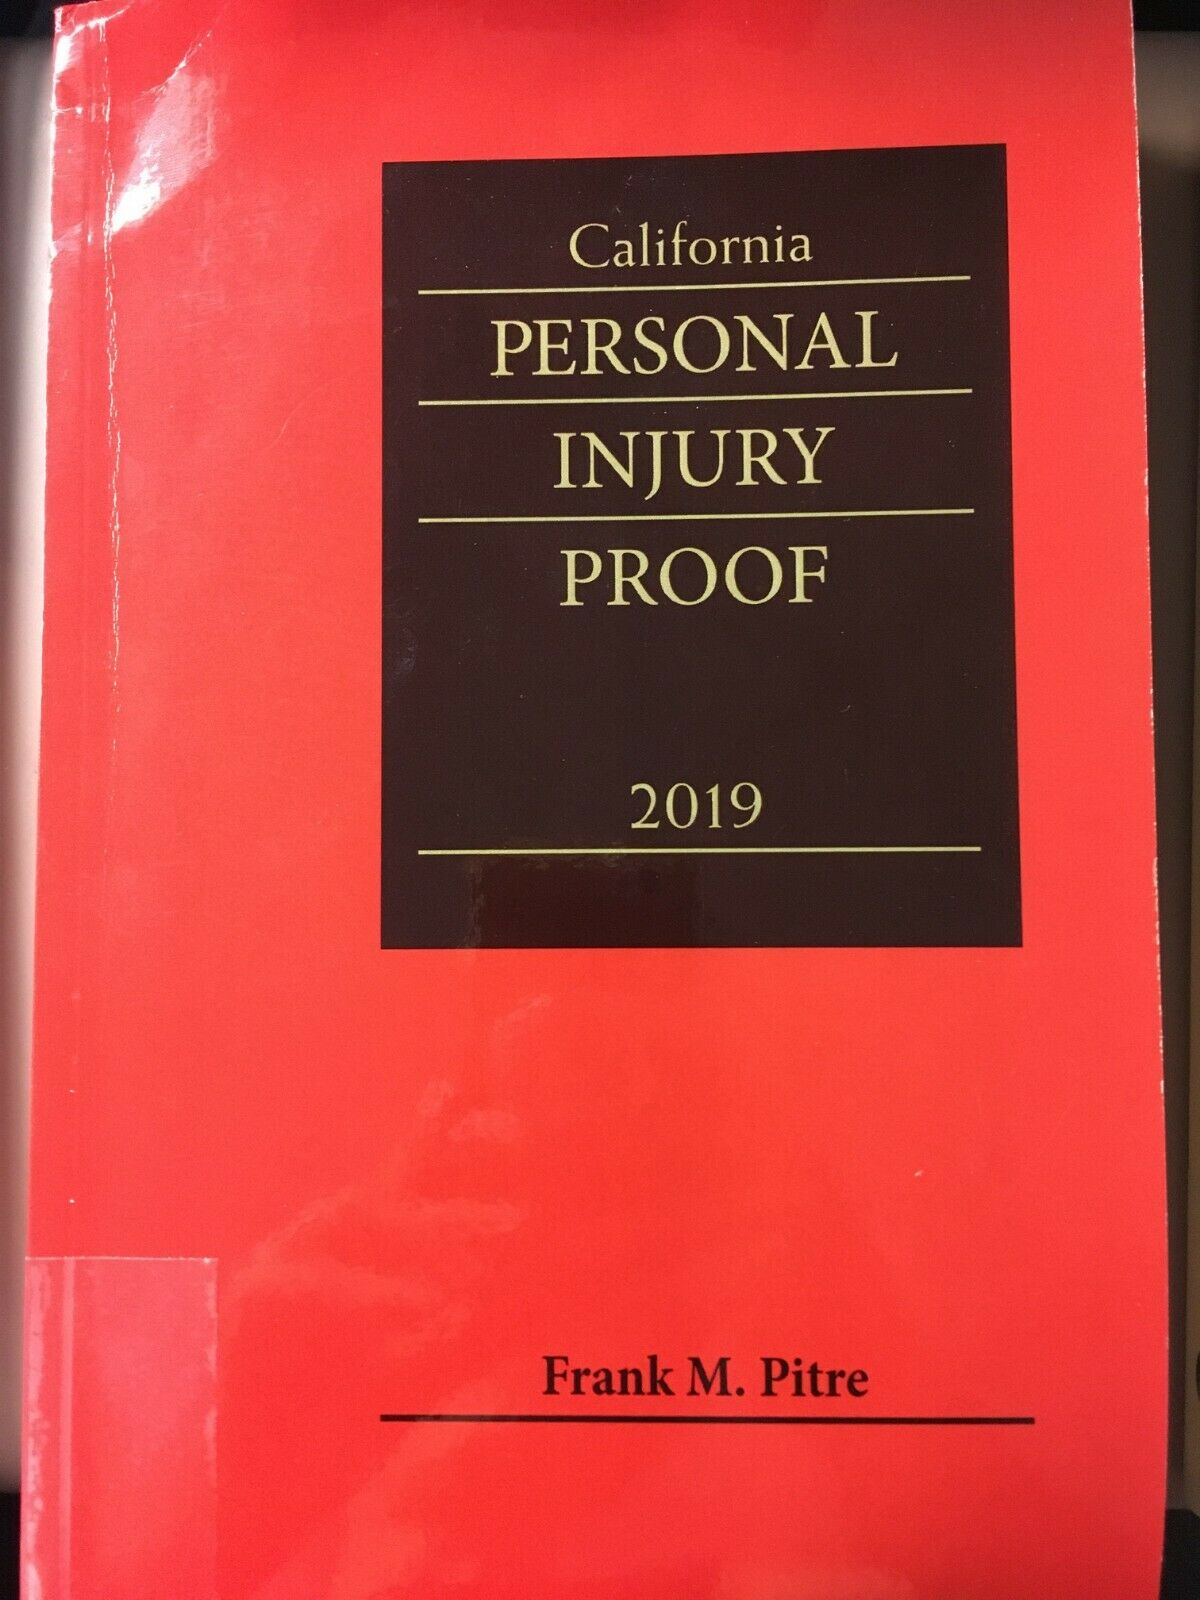 California Personal Injury Proof 2019 CEB 1